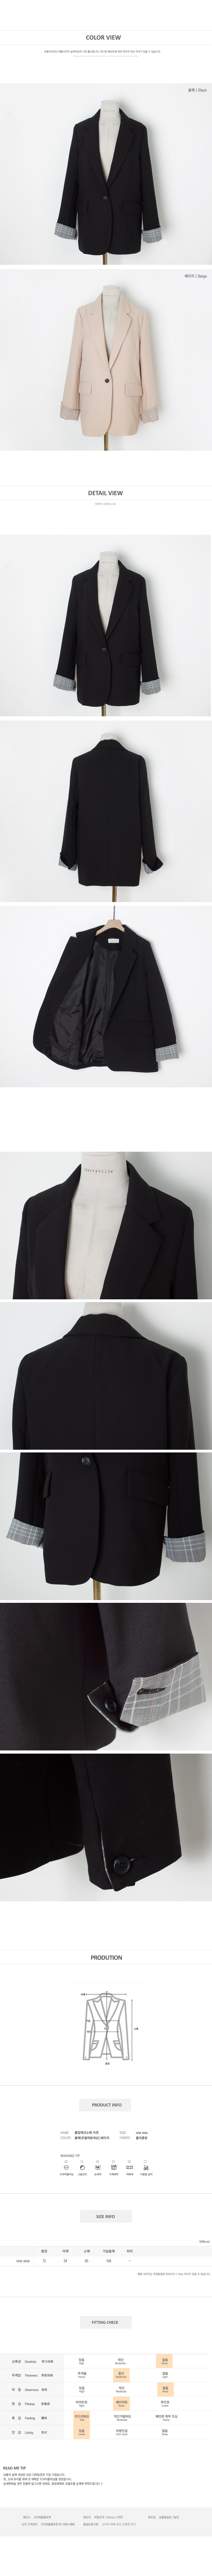 Roll-up checked sleeve jacket